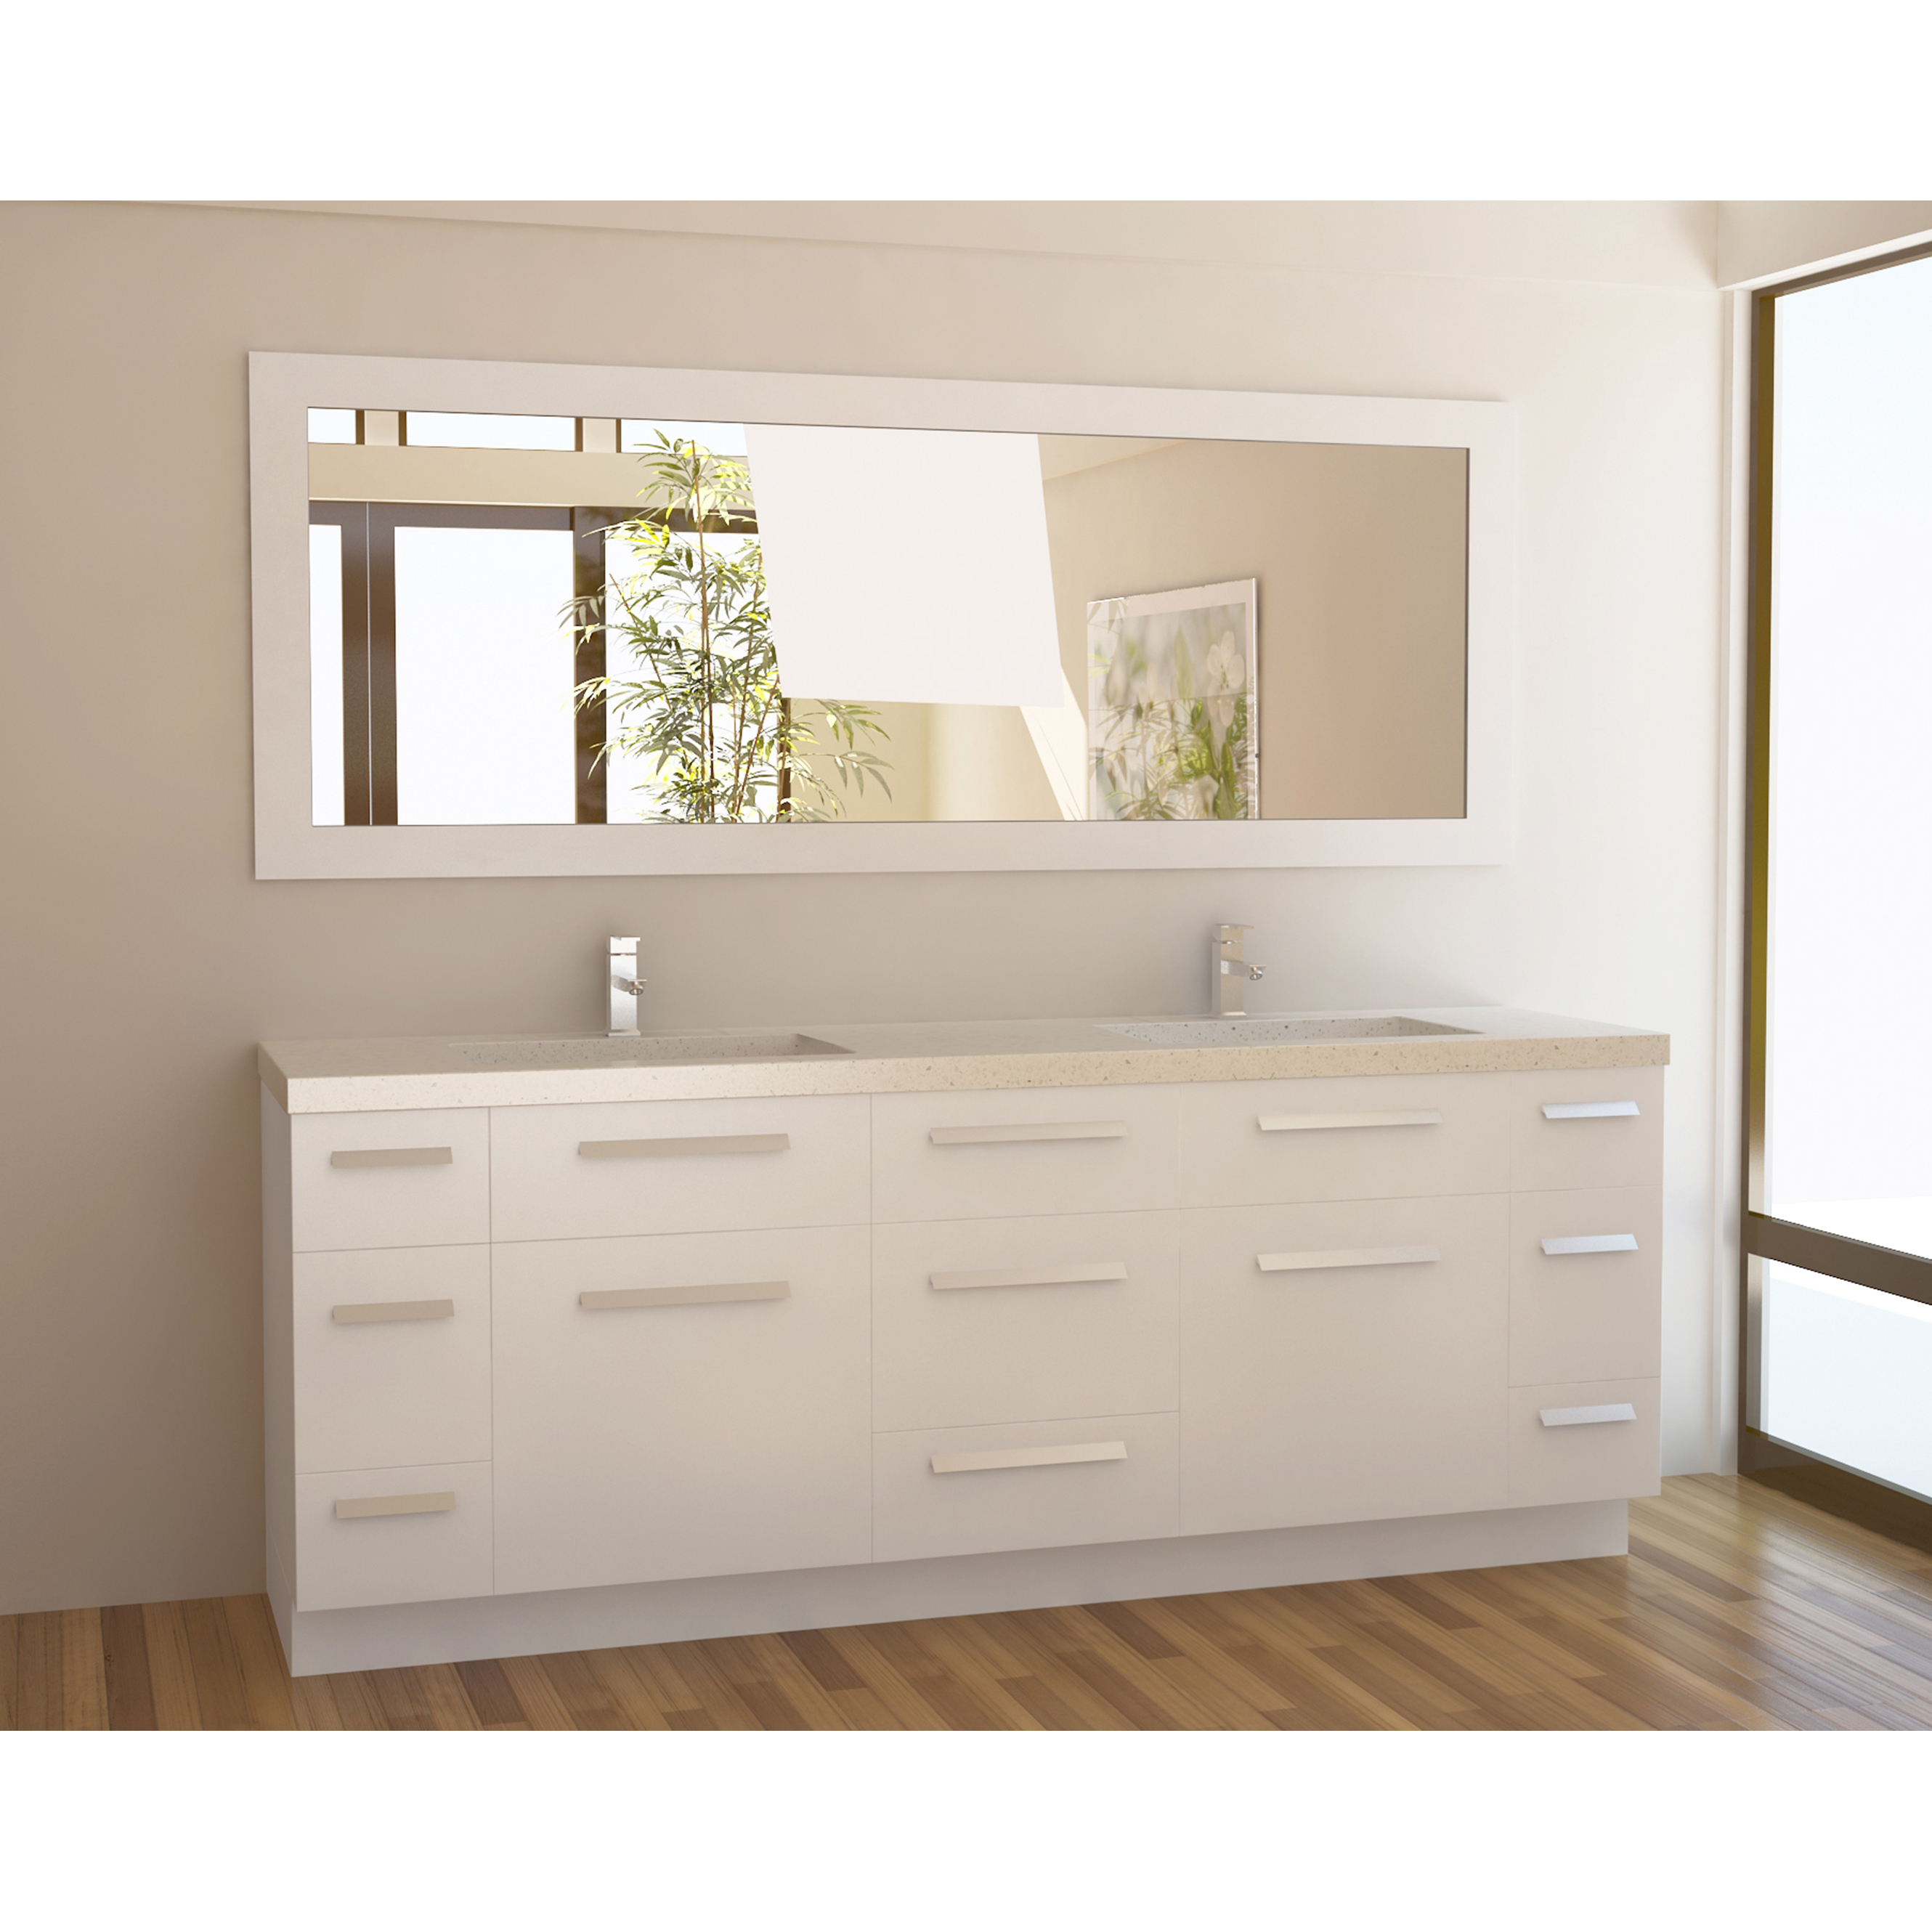 84 Inch Bathroom Vanity The Variants HomesFeed : a contemporary 48 inches vanity for bathroom in white color double sinks and double stainless steel faucets a decorative mirror with white wood frame and in square shape from homesfeed.com size 2660 x 2660 jpeg 1786kB